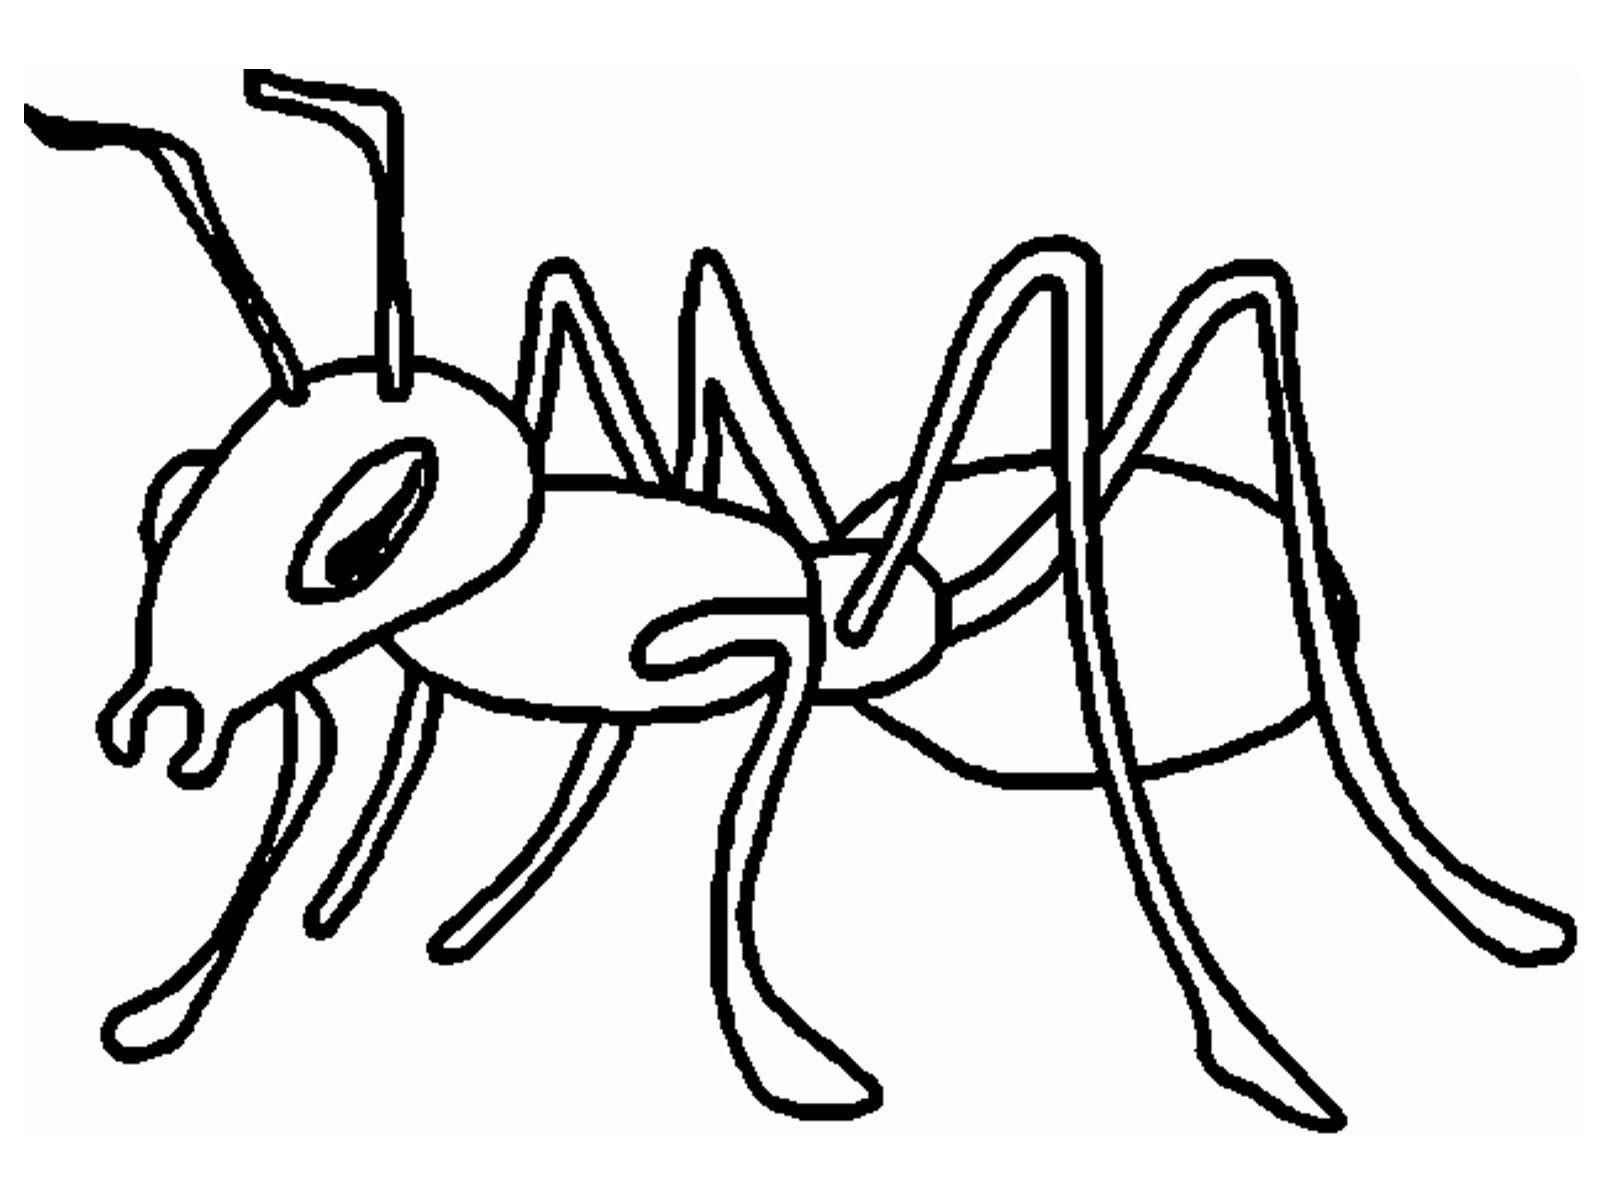 Coloring Page Ant Butterfly Coloring Page Coloring Pages For Kids Coloring Pages